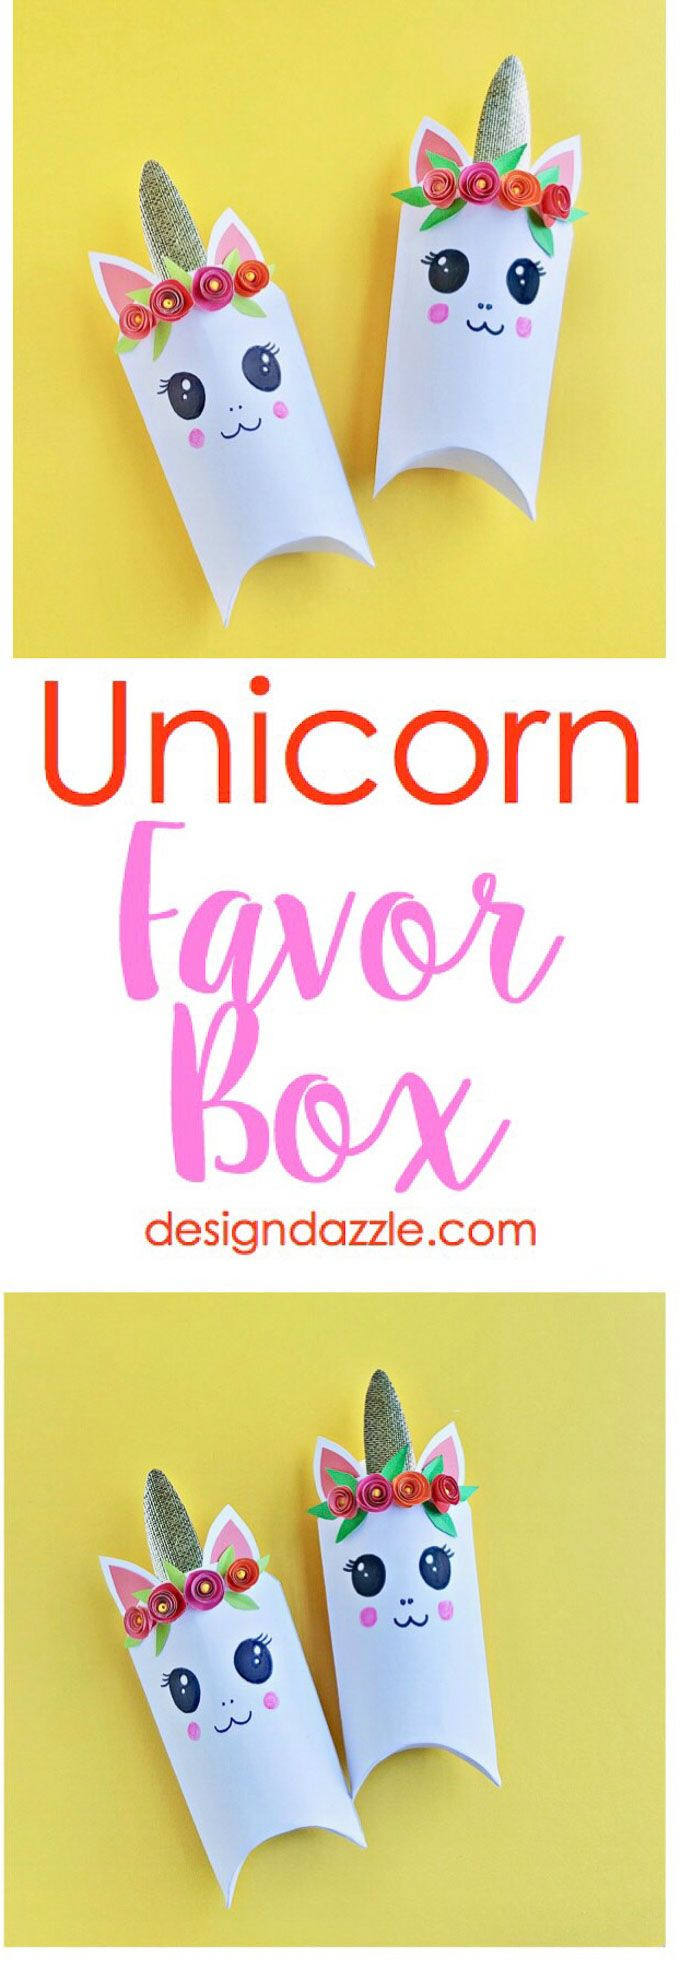 Unicorns are all the rage these days! Here is an adorable unicorn favor box and ...